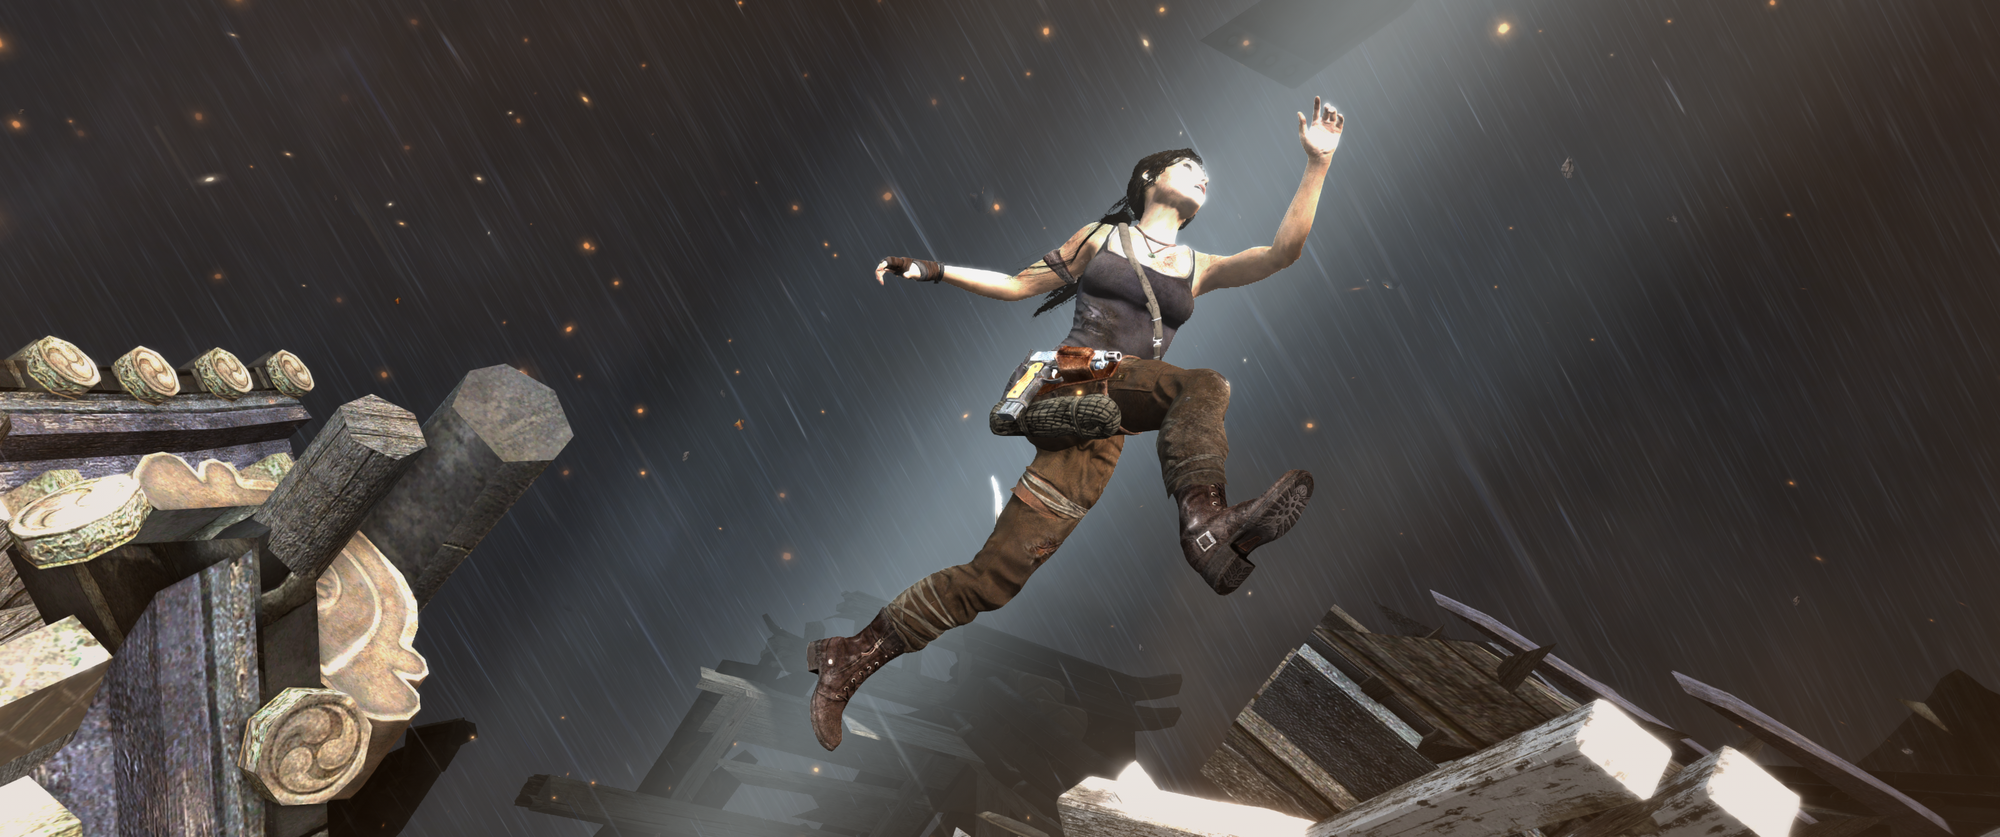 TombRaider_2018_07_24_23_01_17_375.png